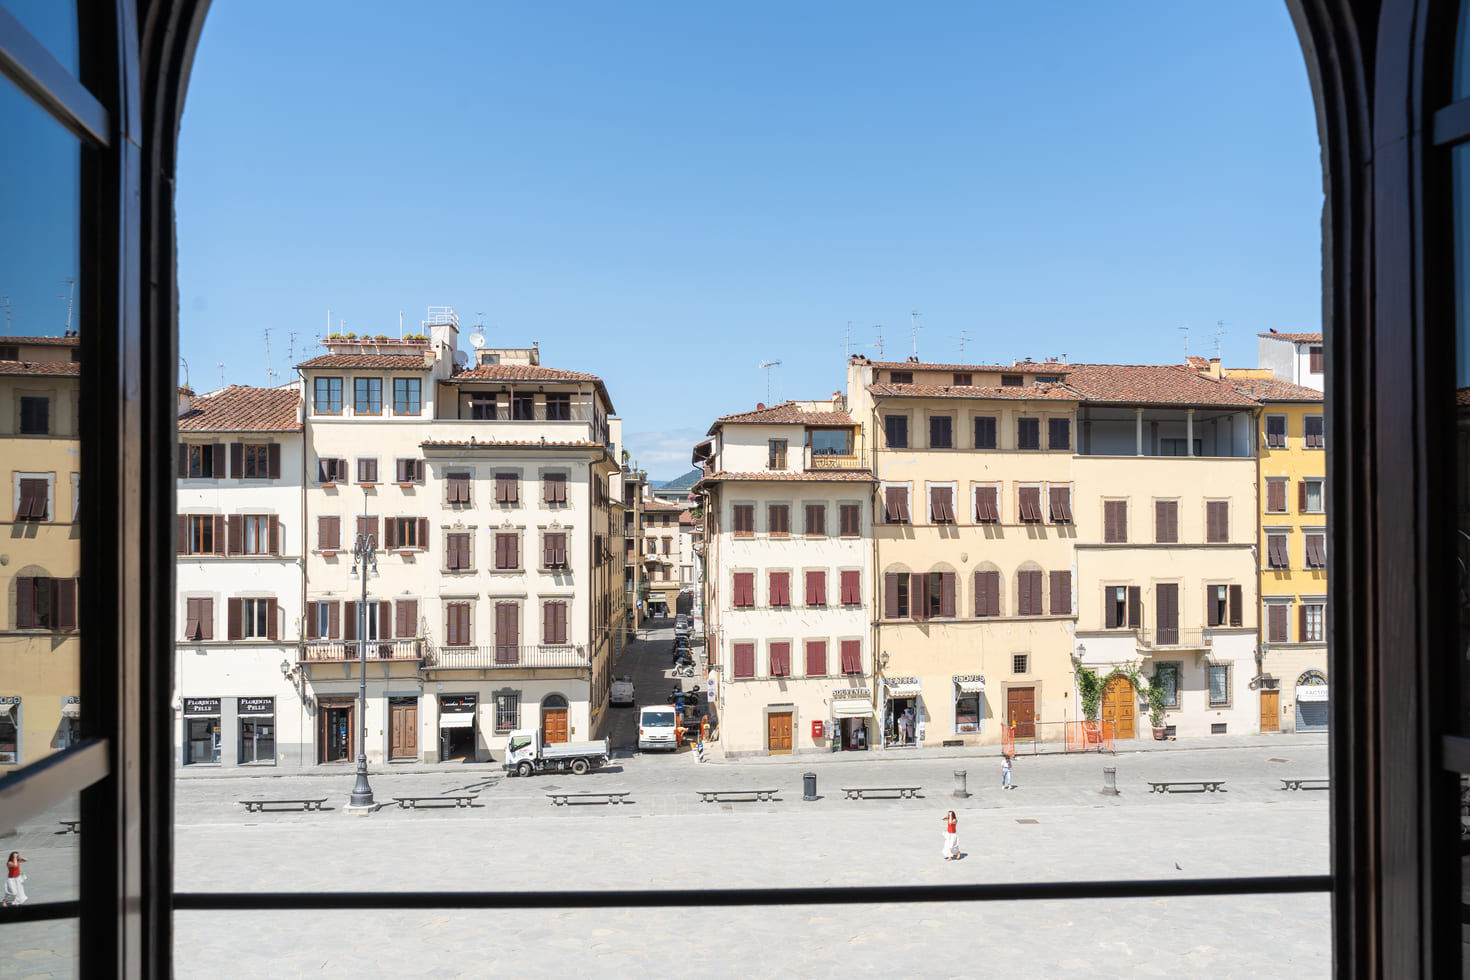 Santa Croce Apartment<br> with view